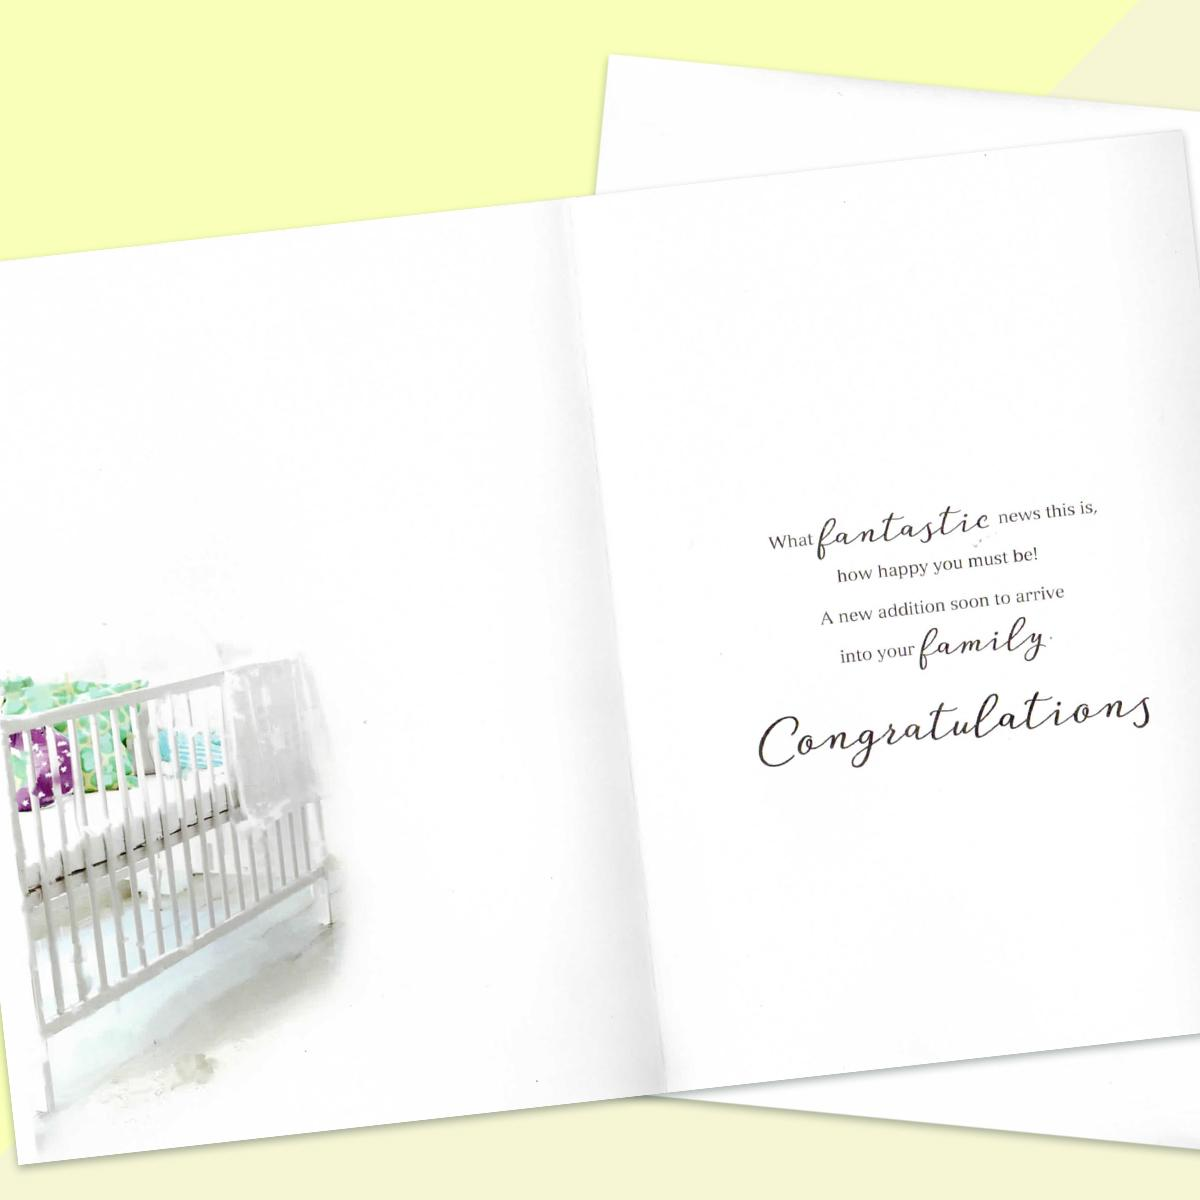 Inside Image Of Parents To Be Card Showing Layout And Printed Text